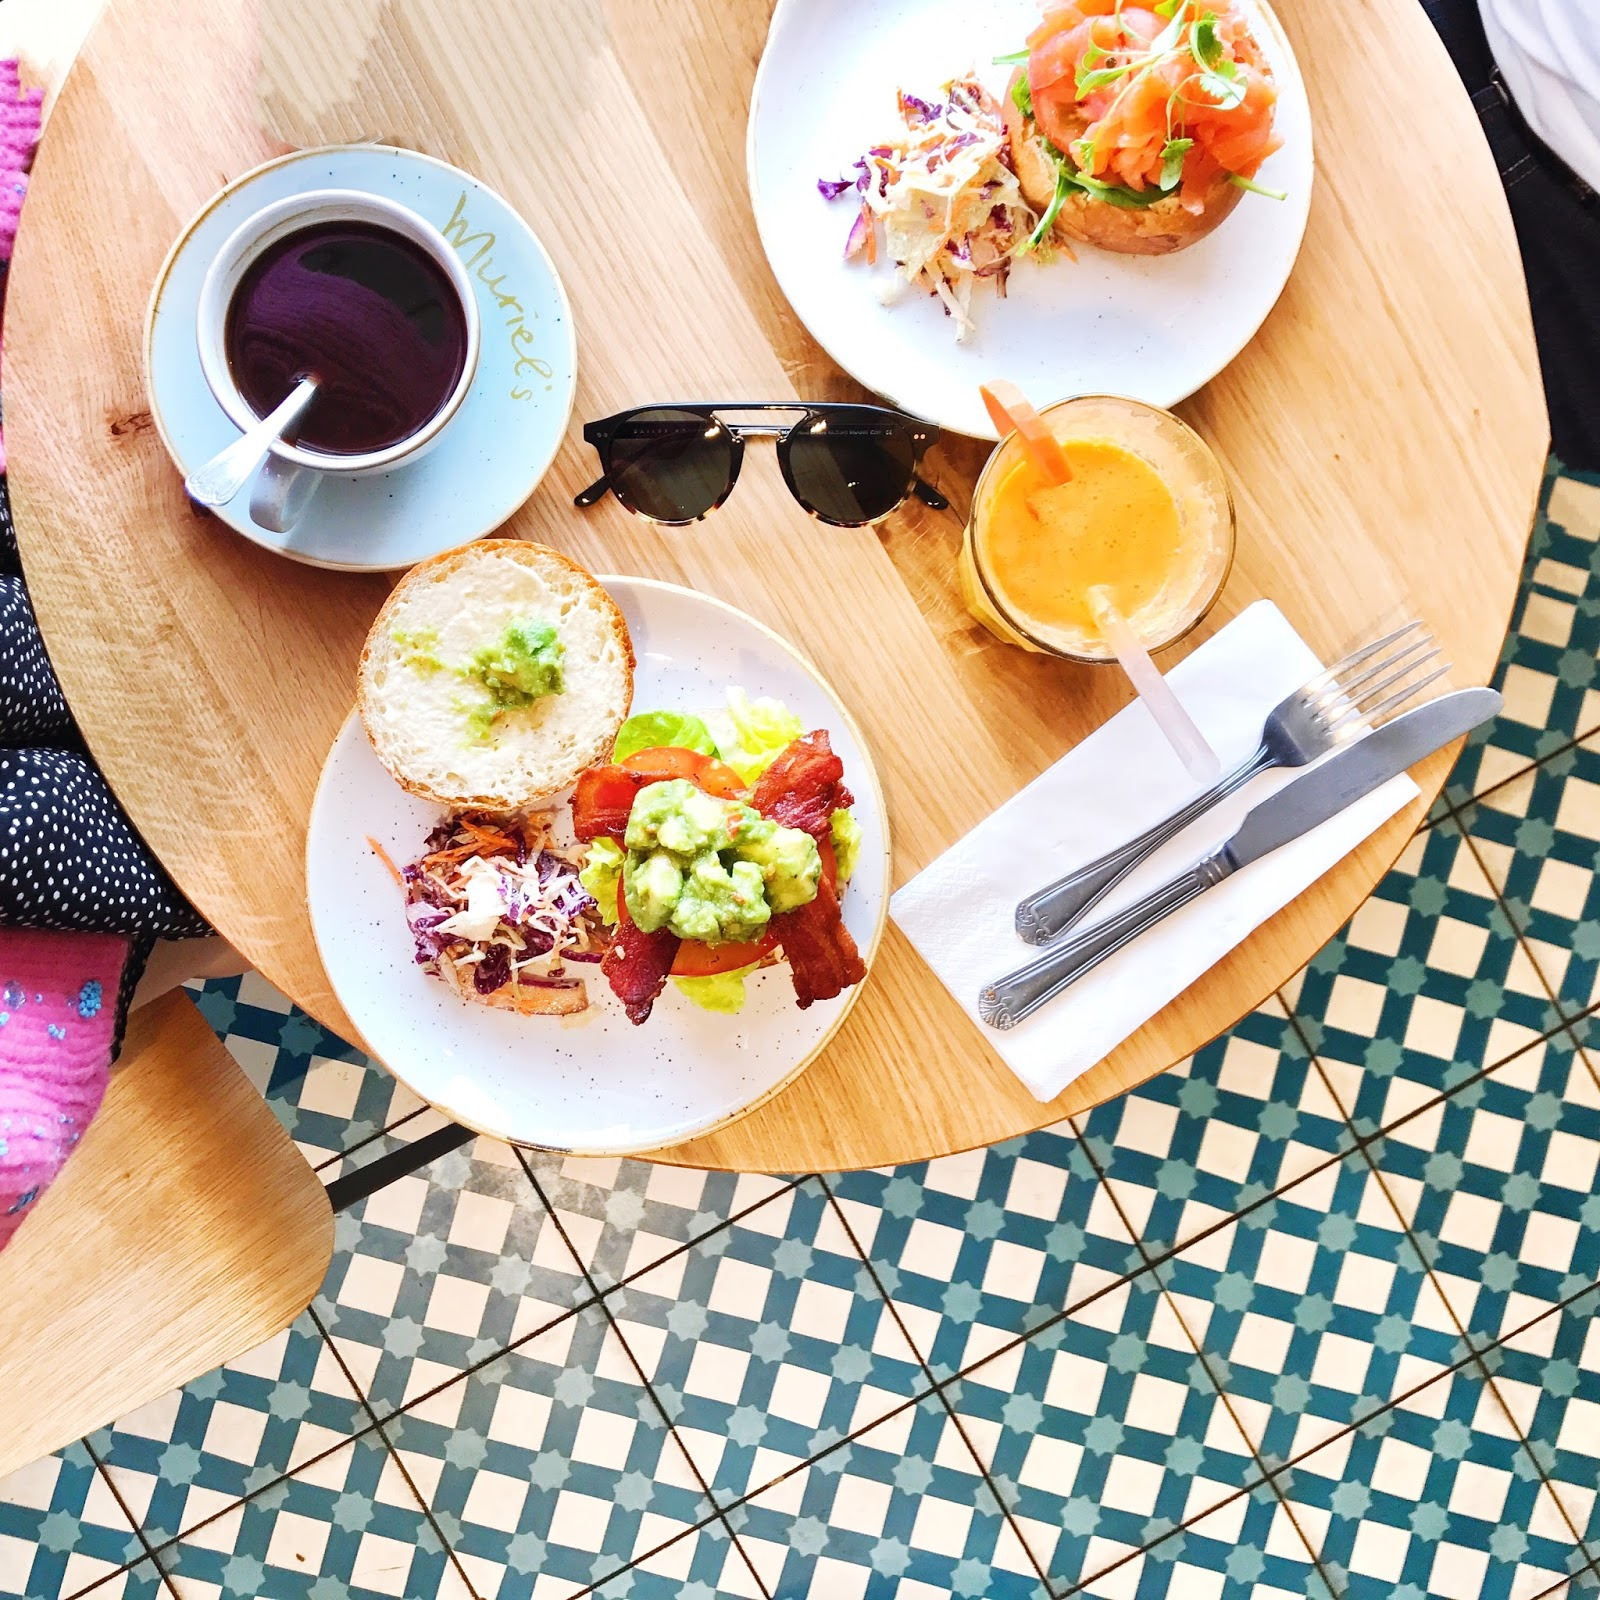 7 Instagram Perfect Brunch and Coffee Spots in London - Muriel's Kitchen